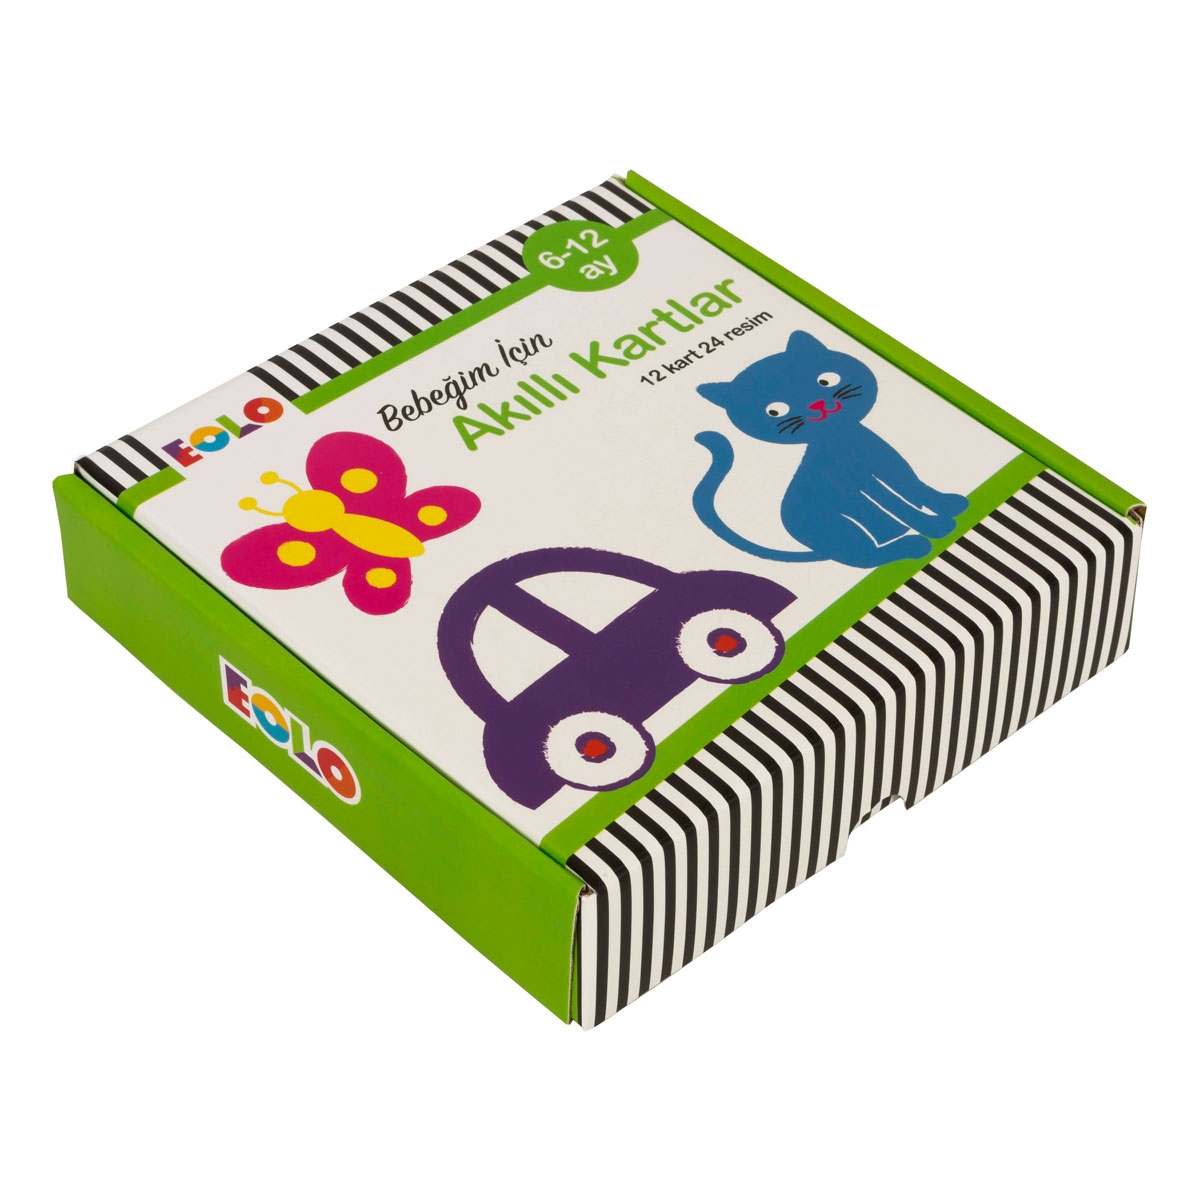 EOLO – Smart Cards Intended for 6 to 12 Month Babies